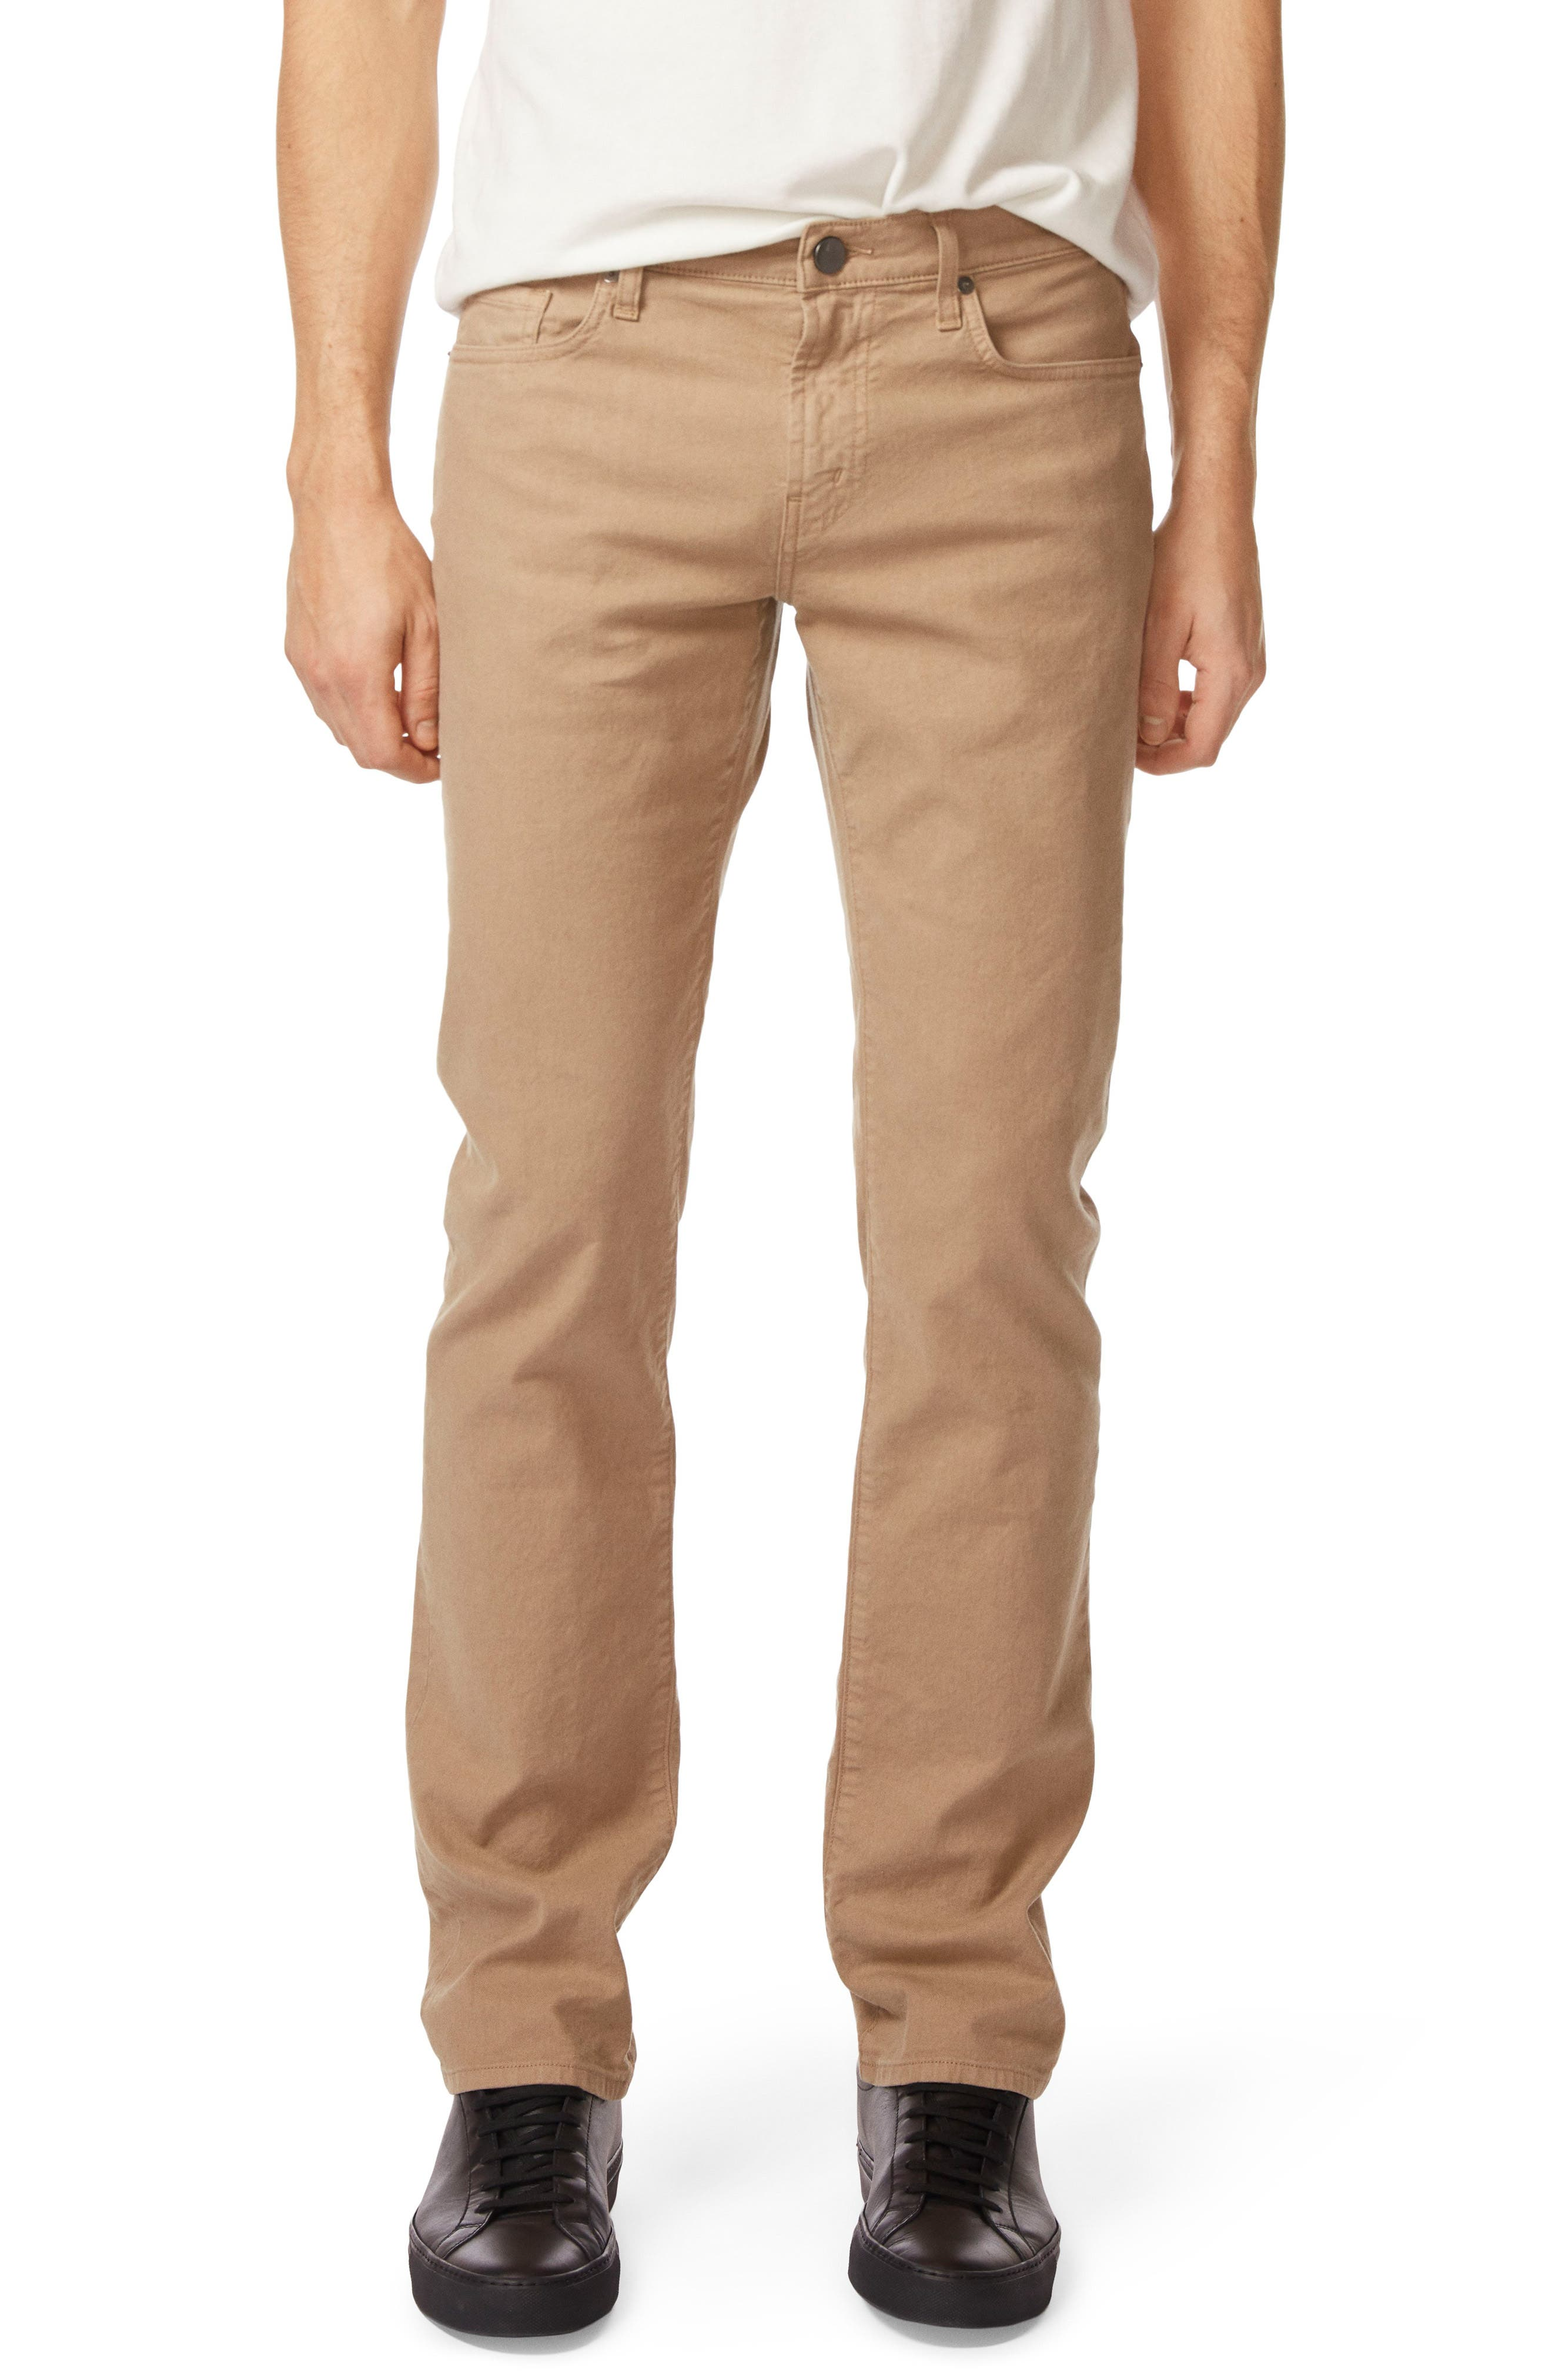 Kane Straight Fit Pant,                             Main thumbnail 1, color,                             Rumex